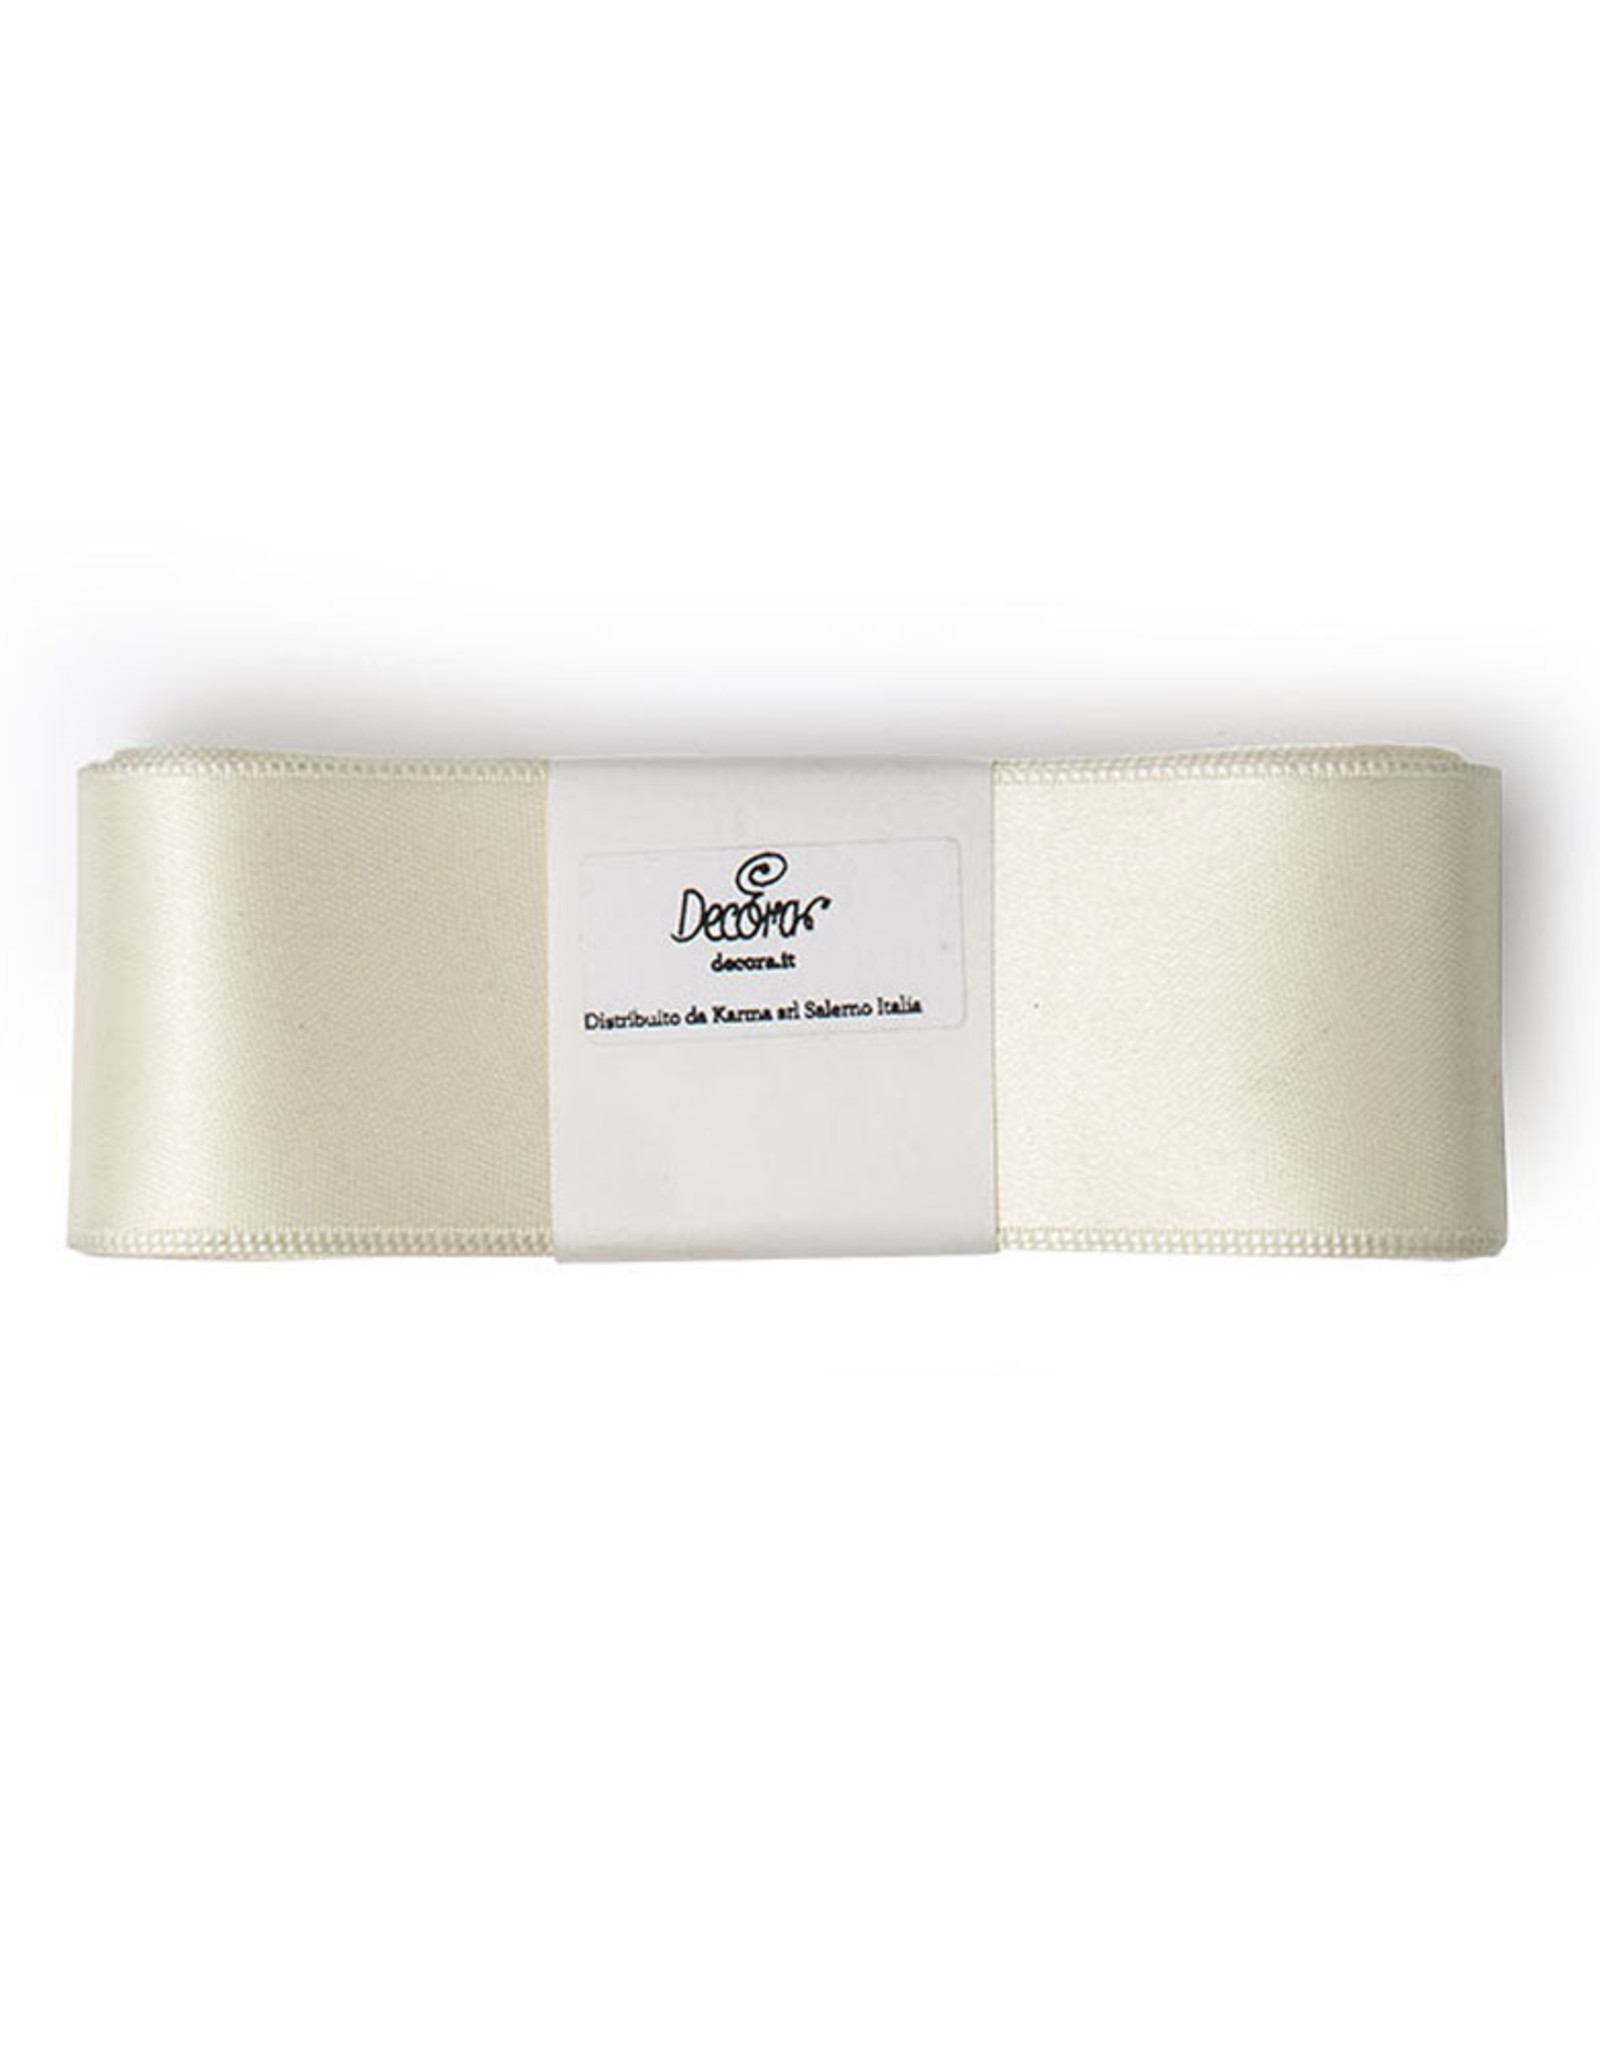 Double Satin Ribbon 40mm x 3mtr Cream White